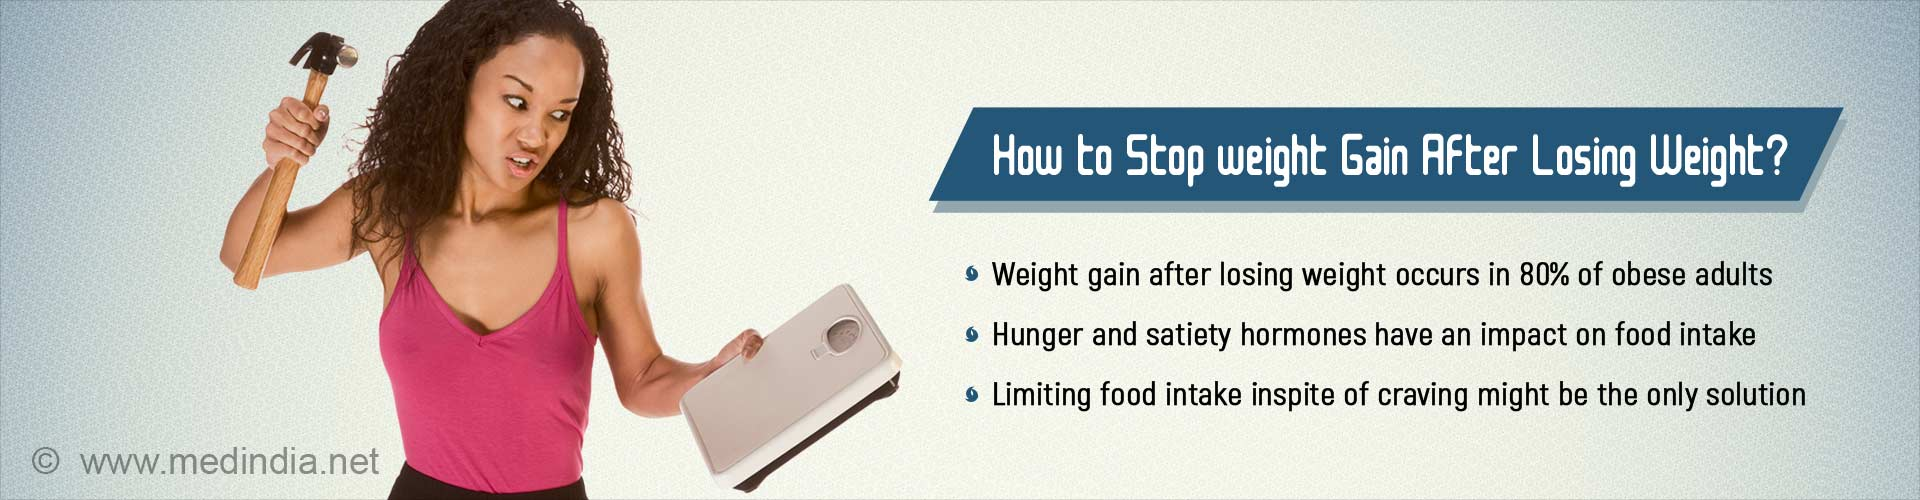 How to Prevent Weight Gain After Losing Weight?